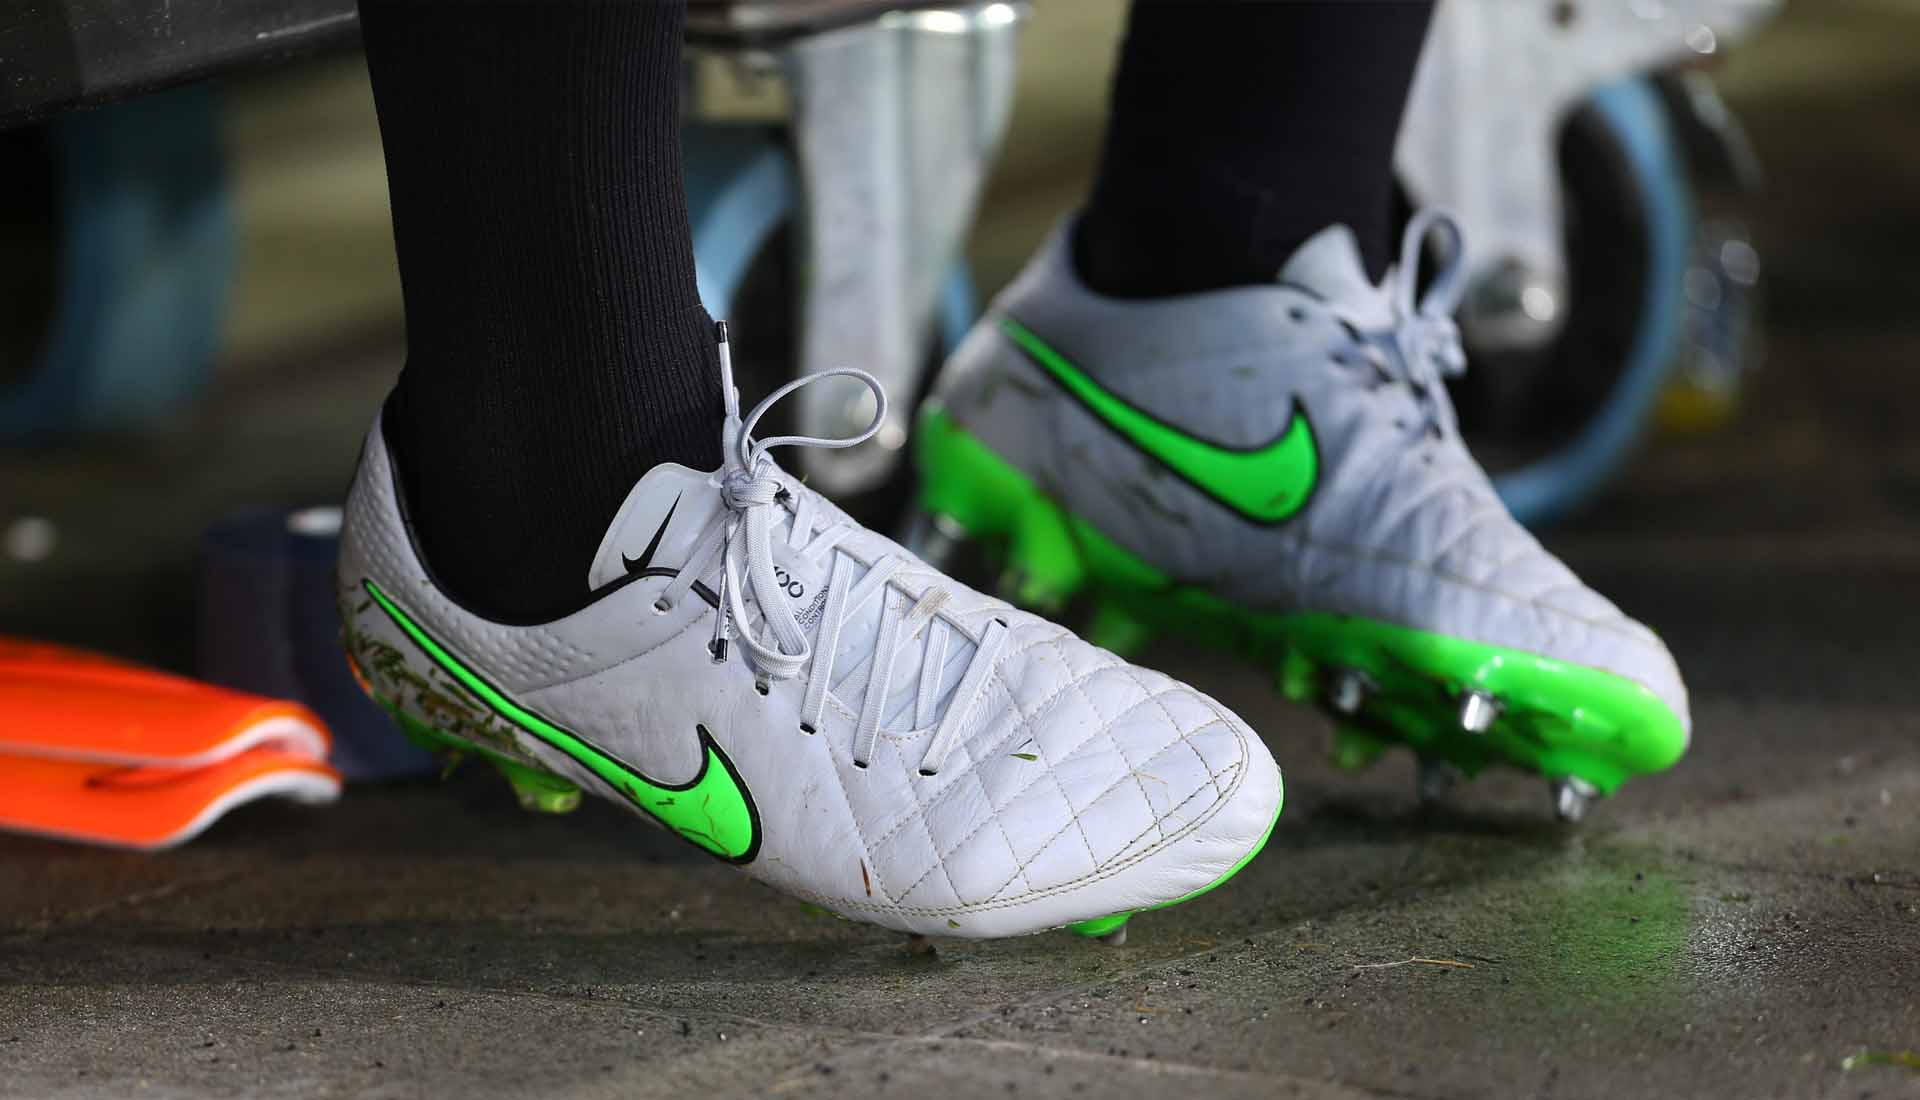 Fielmente búnker Buque de guerra  SoccerBible's Top 30 Football Boots of the Decade - SoccerBible